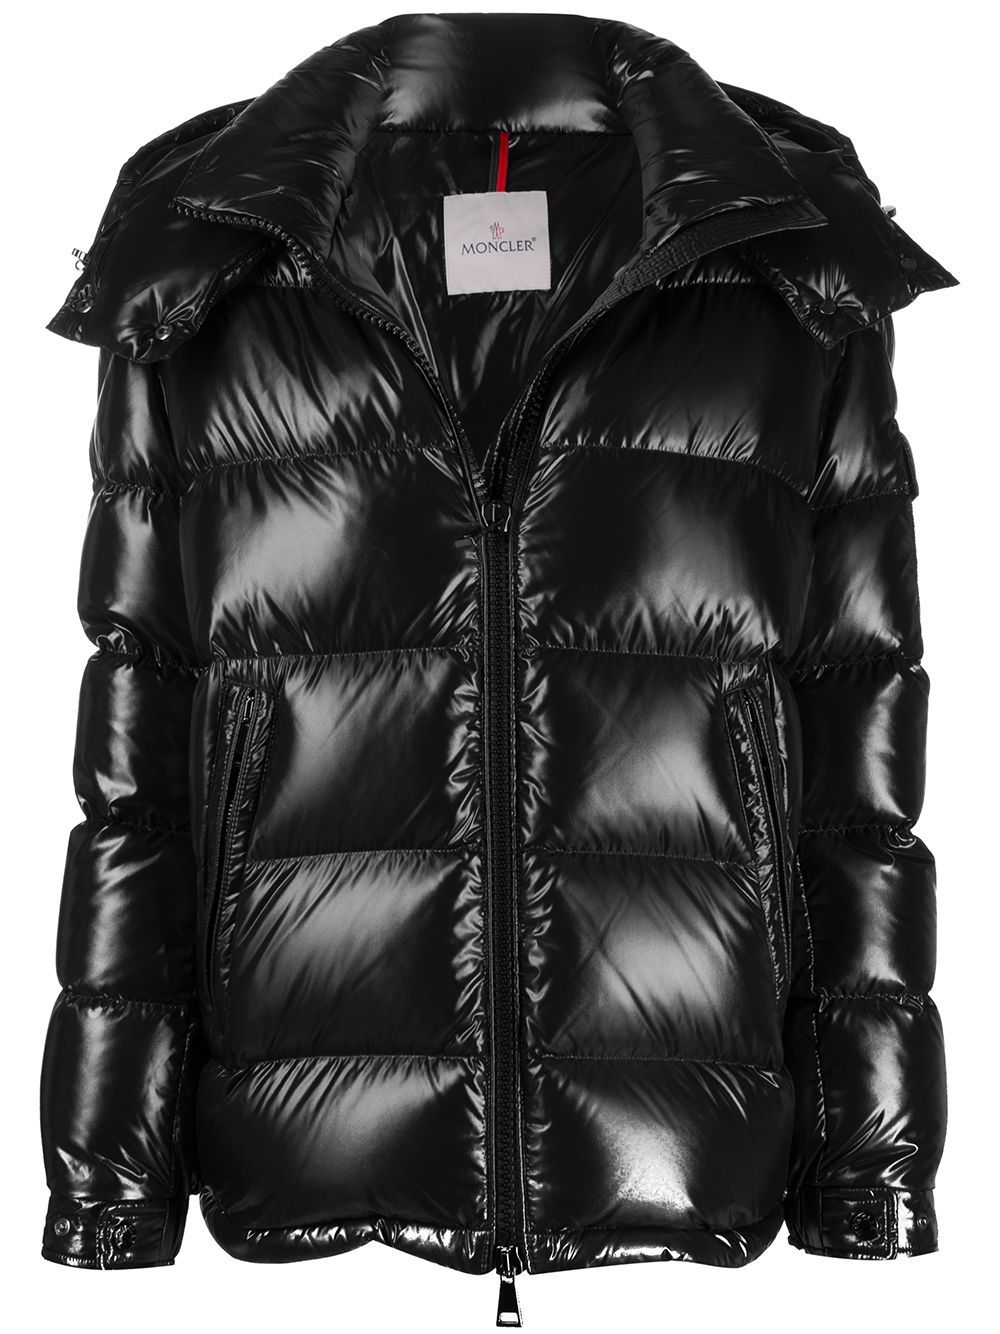 Moncler Quilted Zipped Puffer Jacket Farfetch In 2021 Moncler Jacket Women Moncler Puffer Jacket Women [ 1334 x 1000 Pixel ]